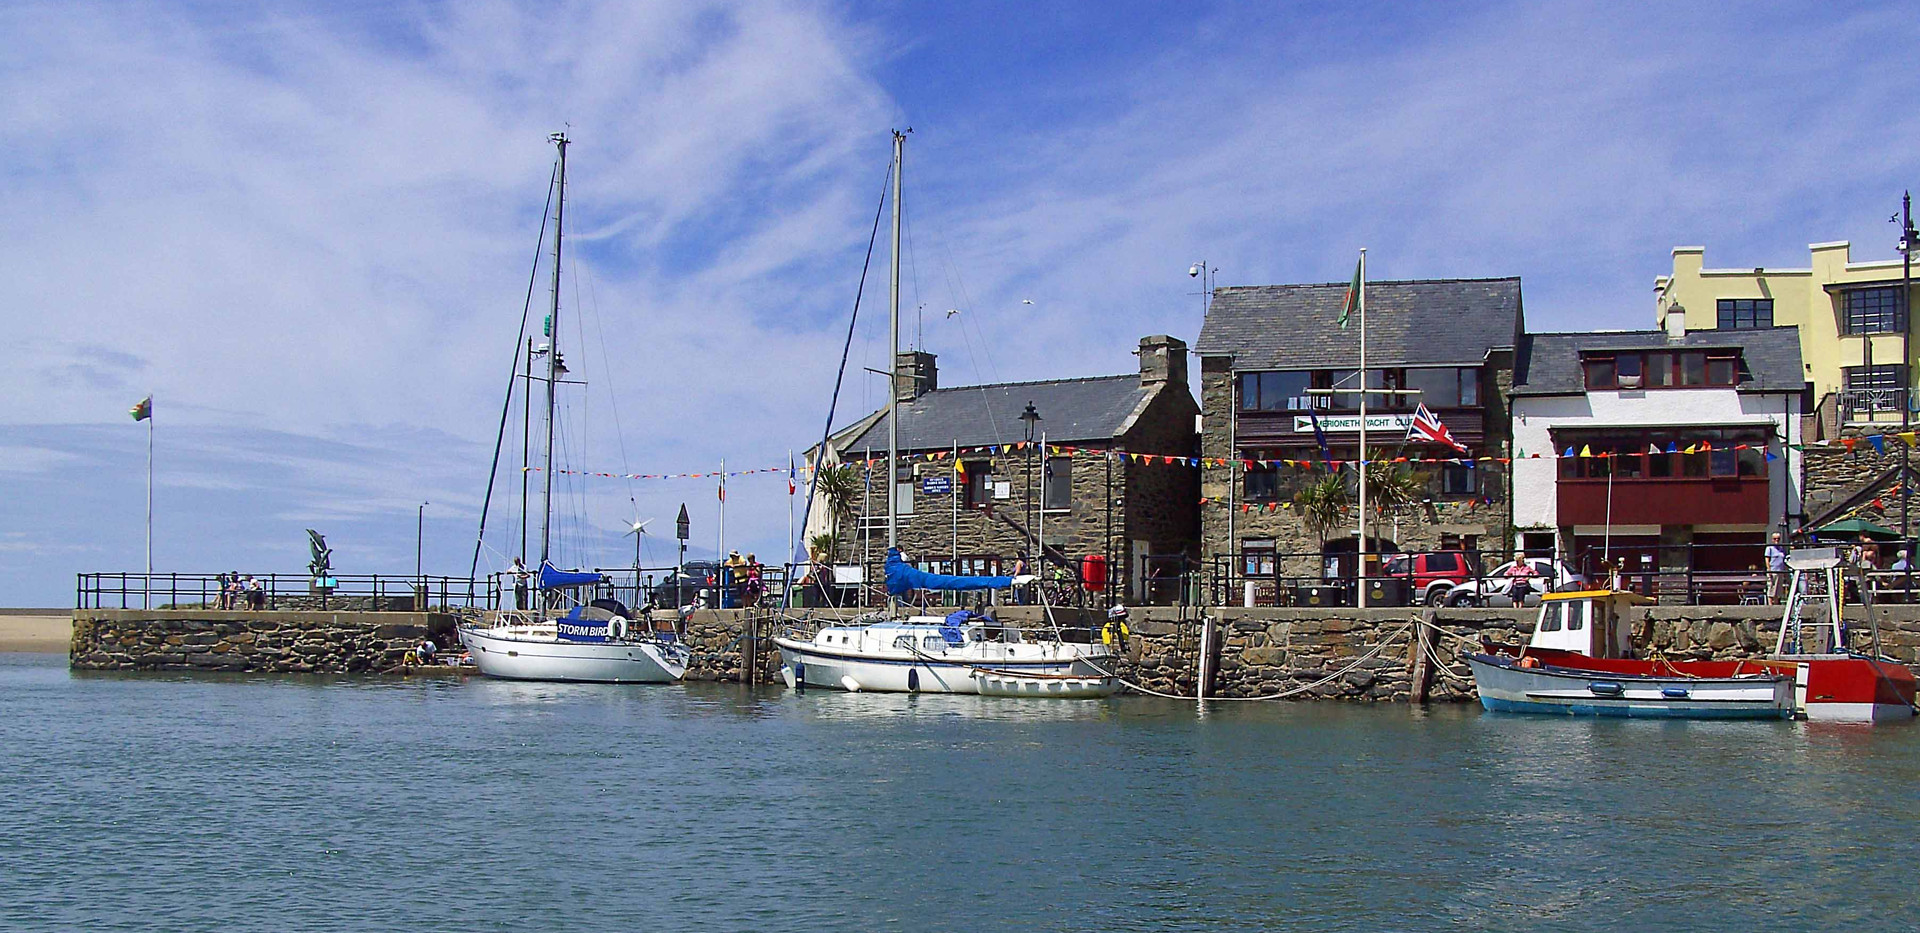 Barmouth quayside from the water